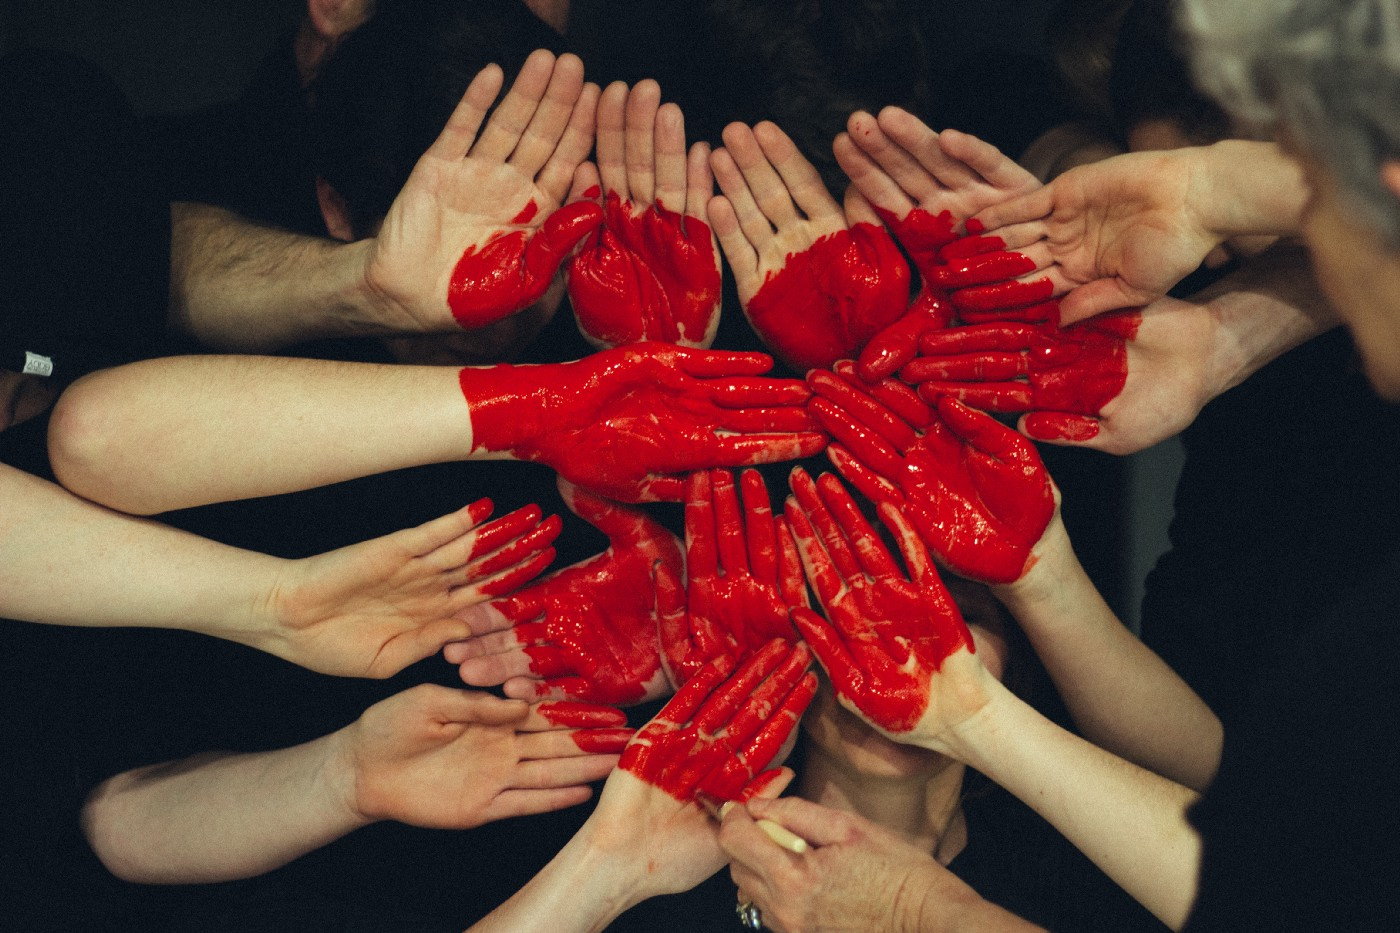 Hands coming together to form a heart with red paint. Photo credit goes to Tim Marshall.